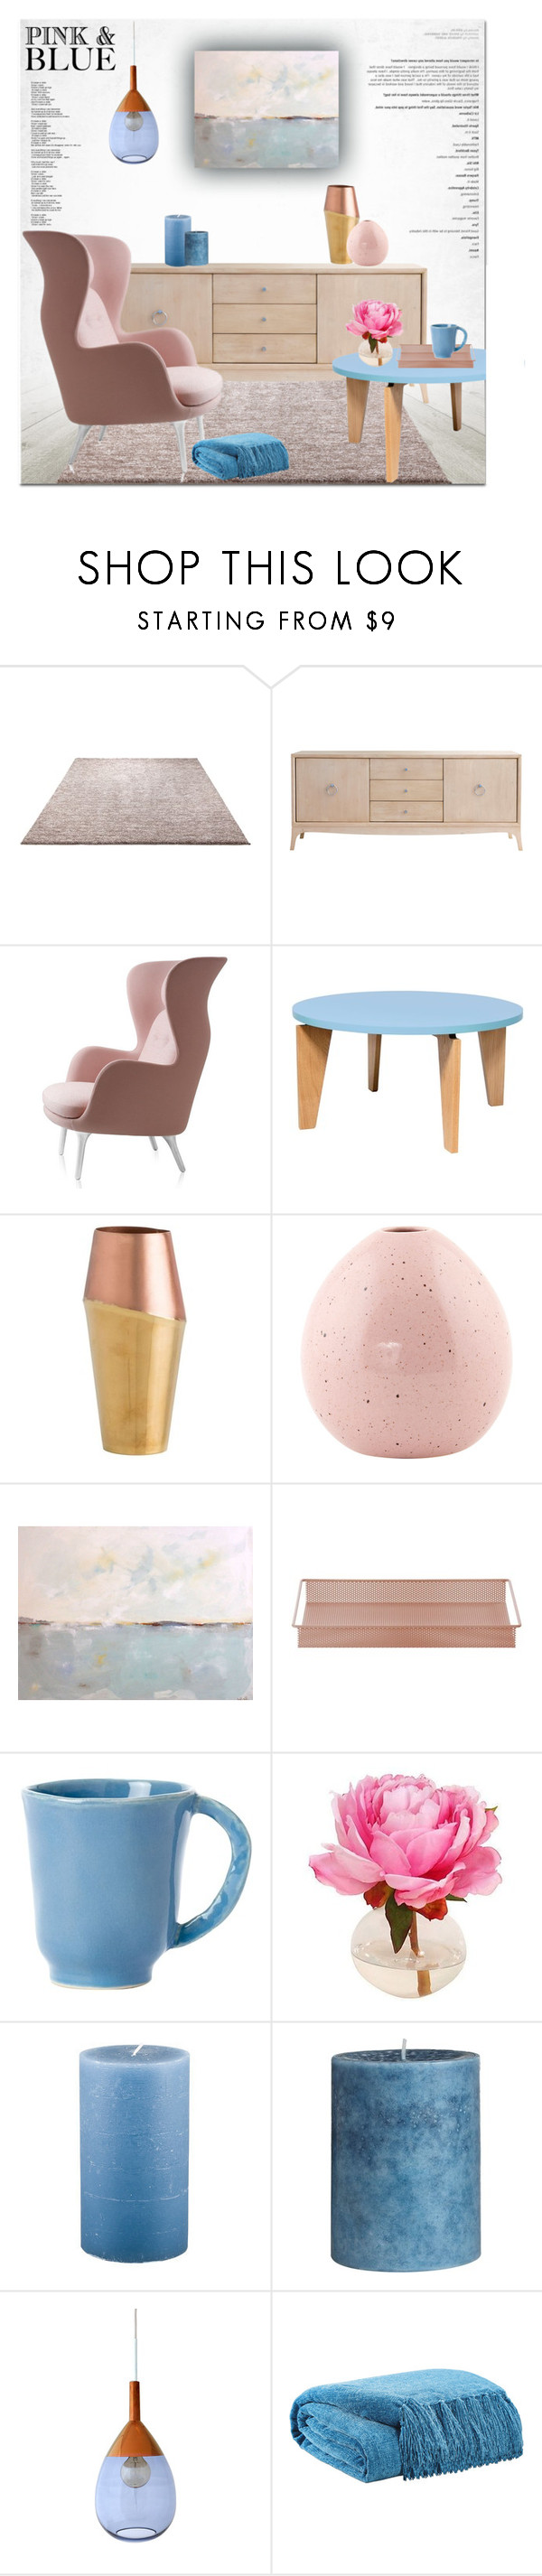 """Color Challenge: Pink and Blue"" by helenevlacho ❤ liked on Polyvore featuring interior, interiors, interior design, home, home decor, interior decorating, ESPRIT, Redford House, TemaHome and Arteriors"